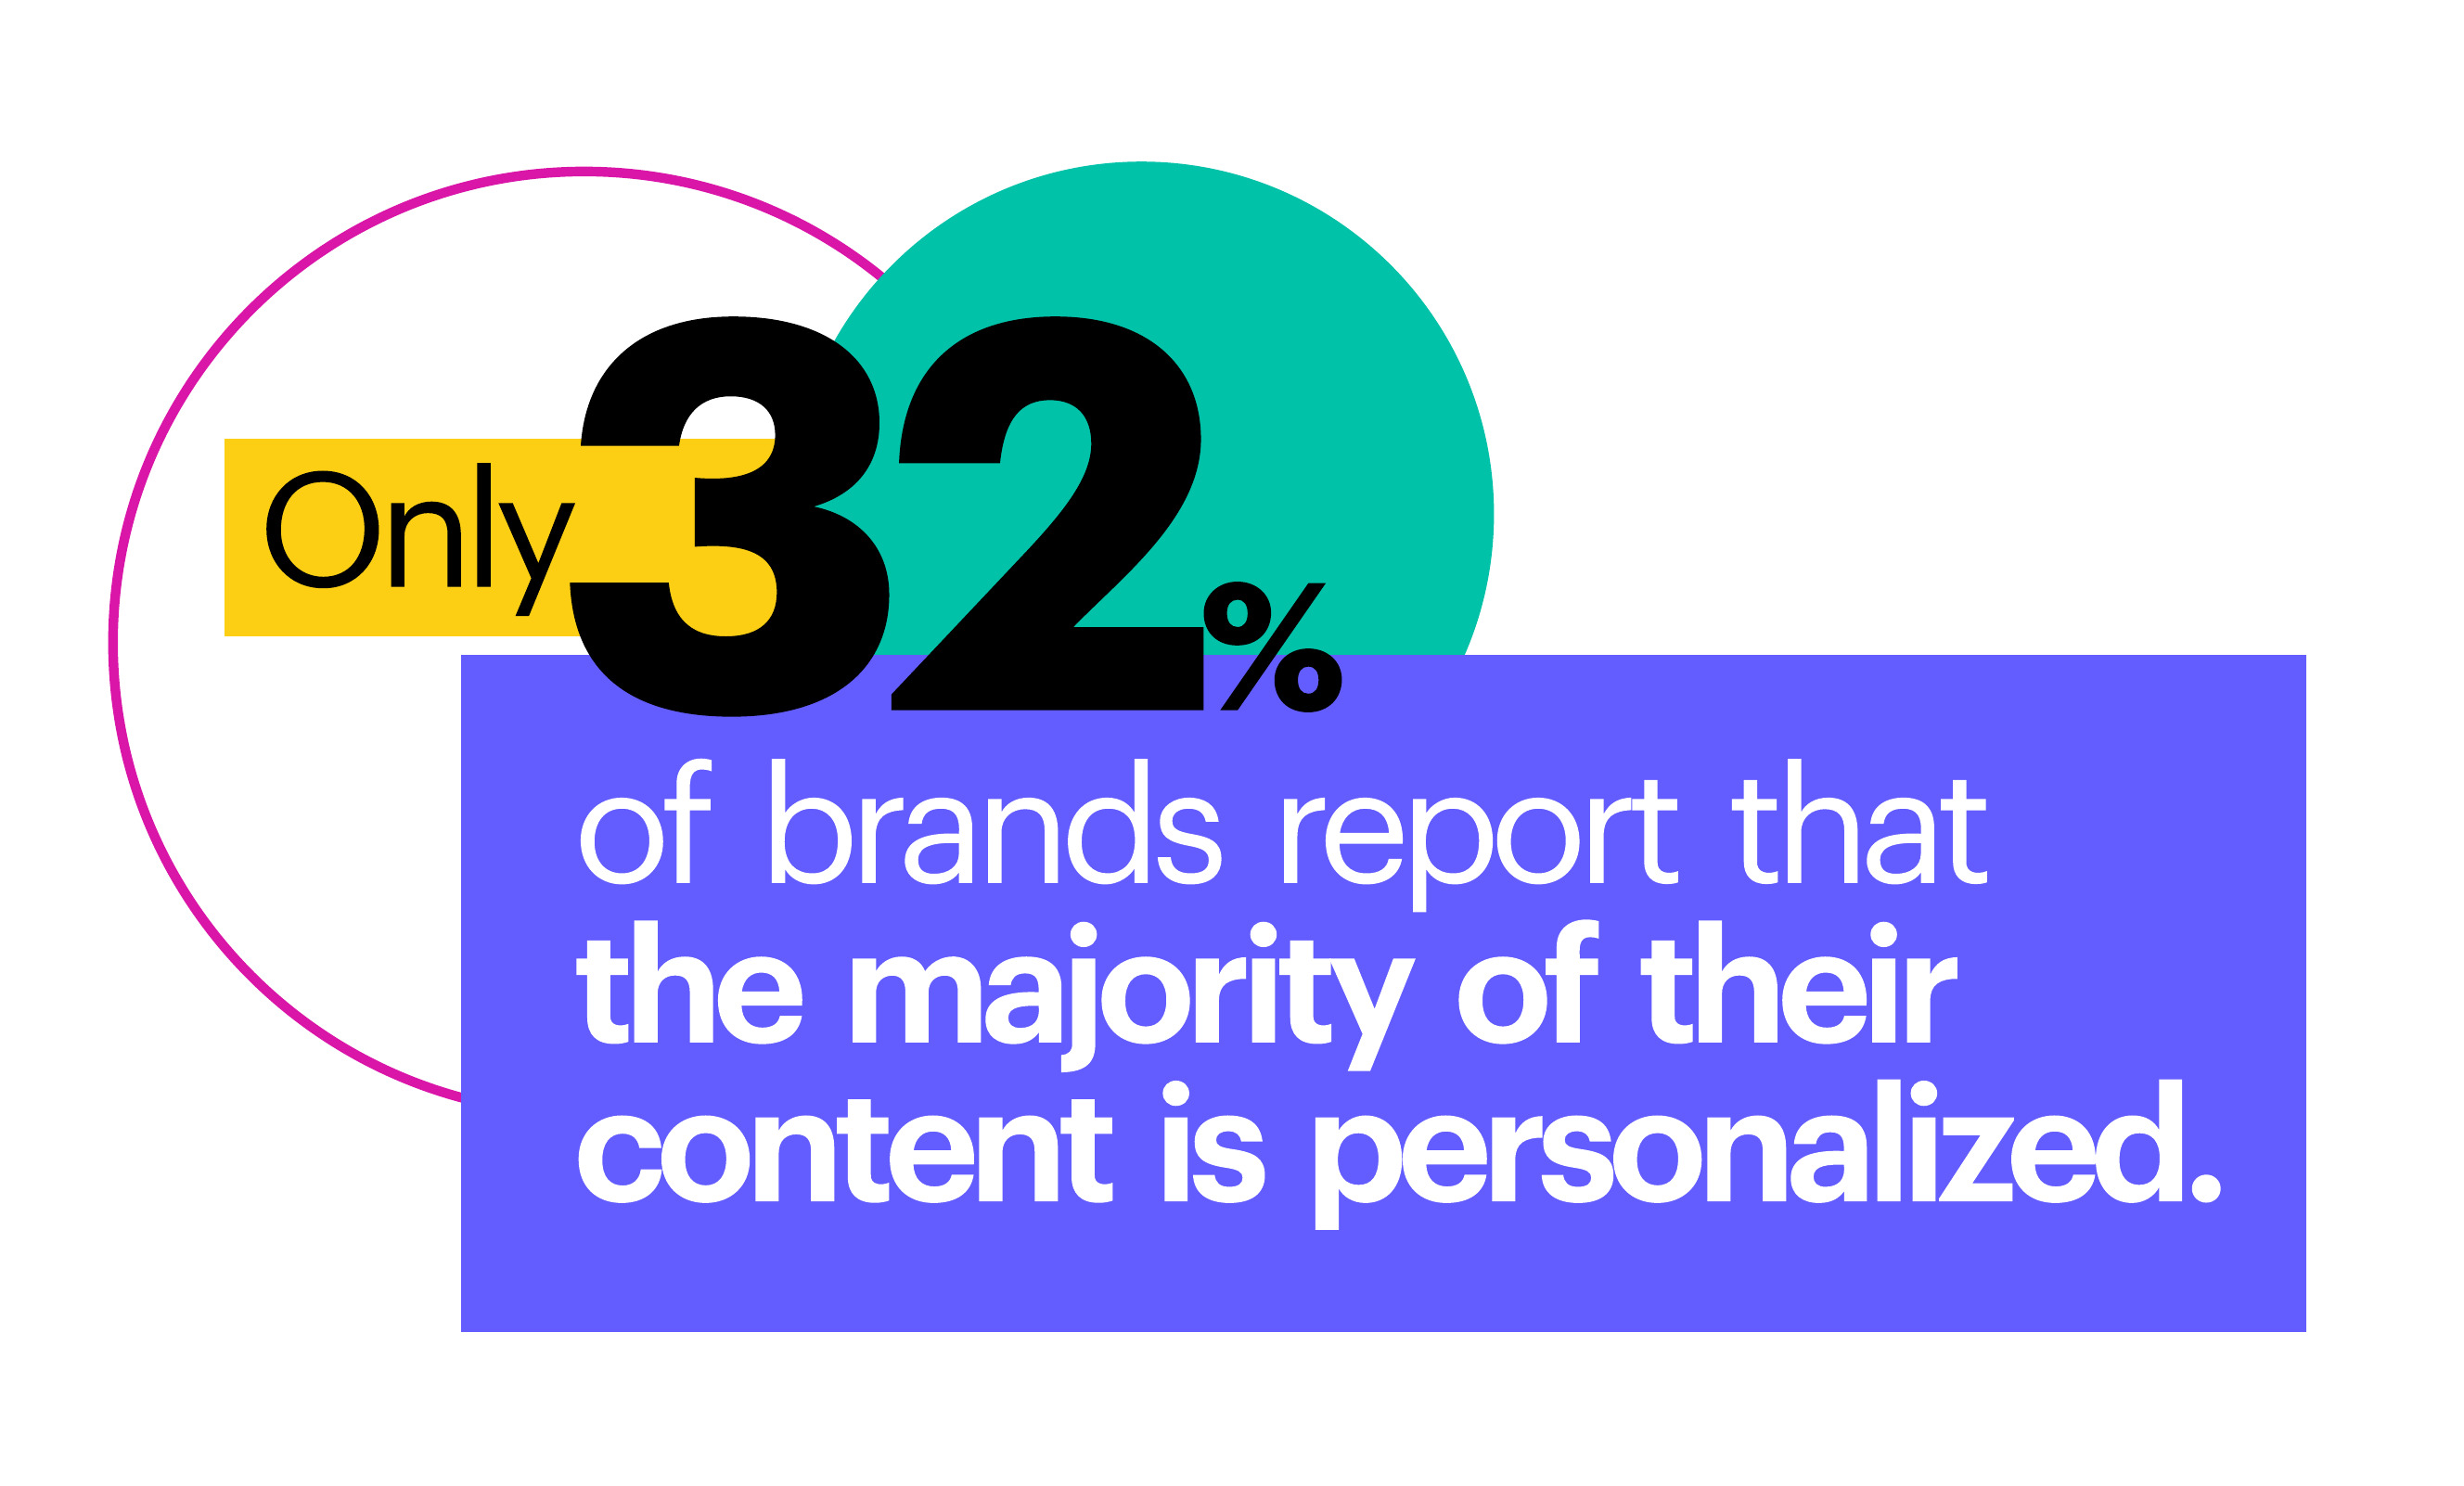 Only 32% of brands report that the majority of their content is personalized.